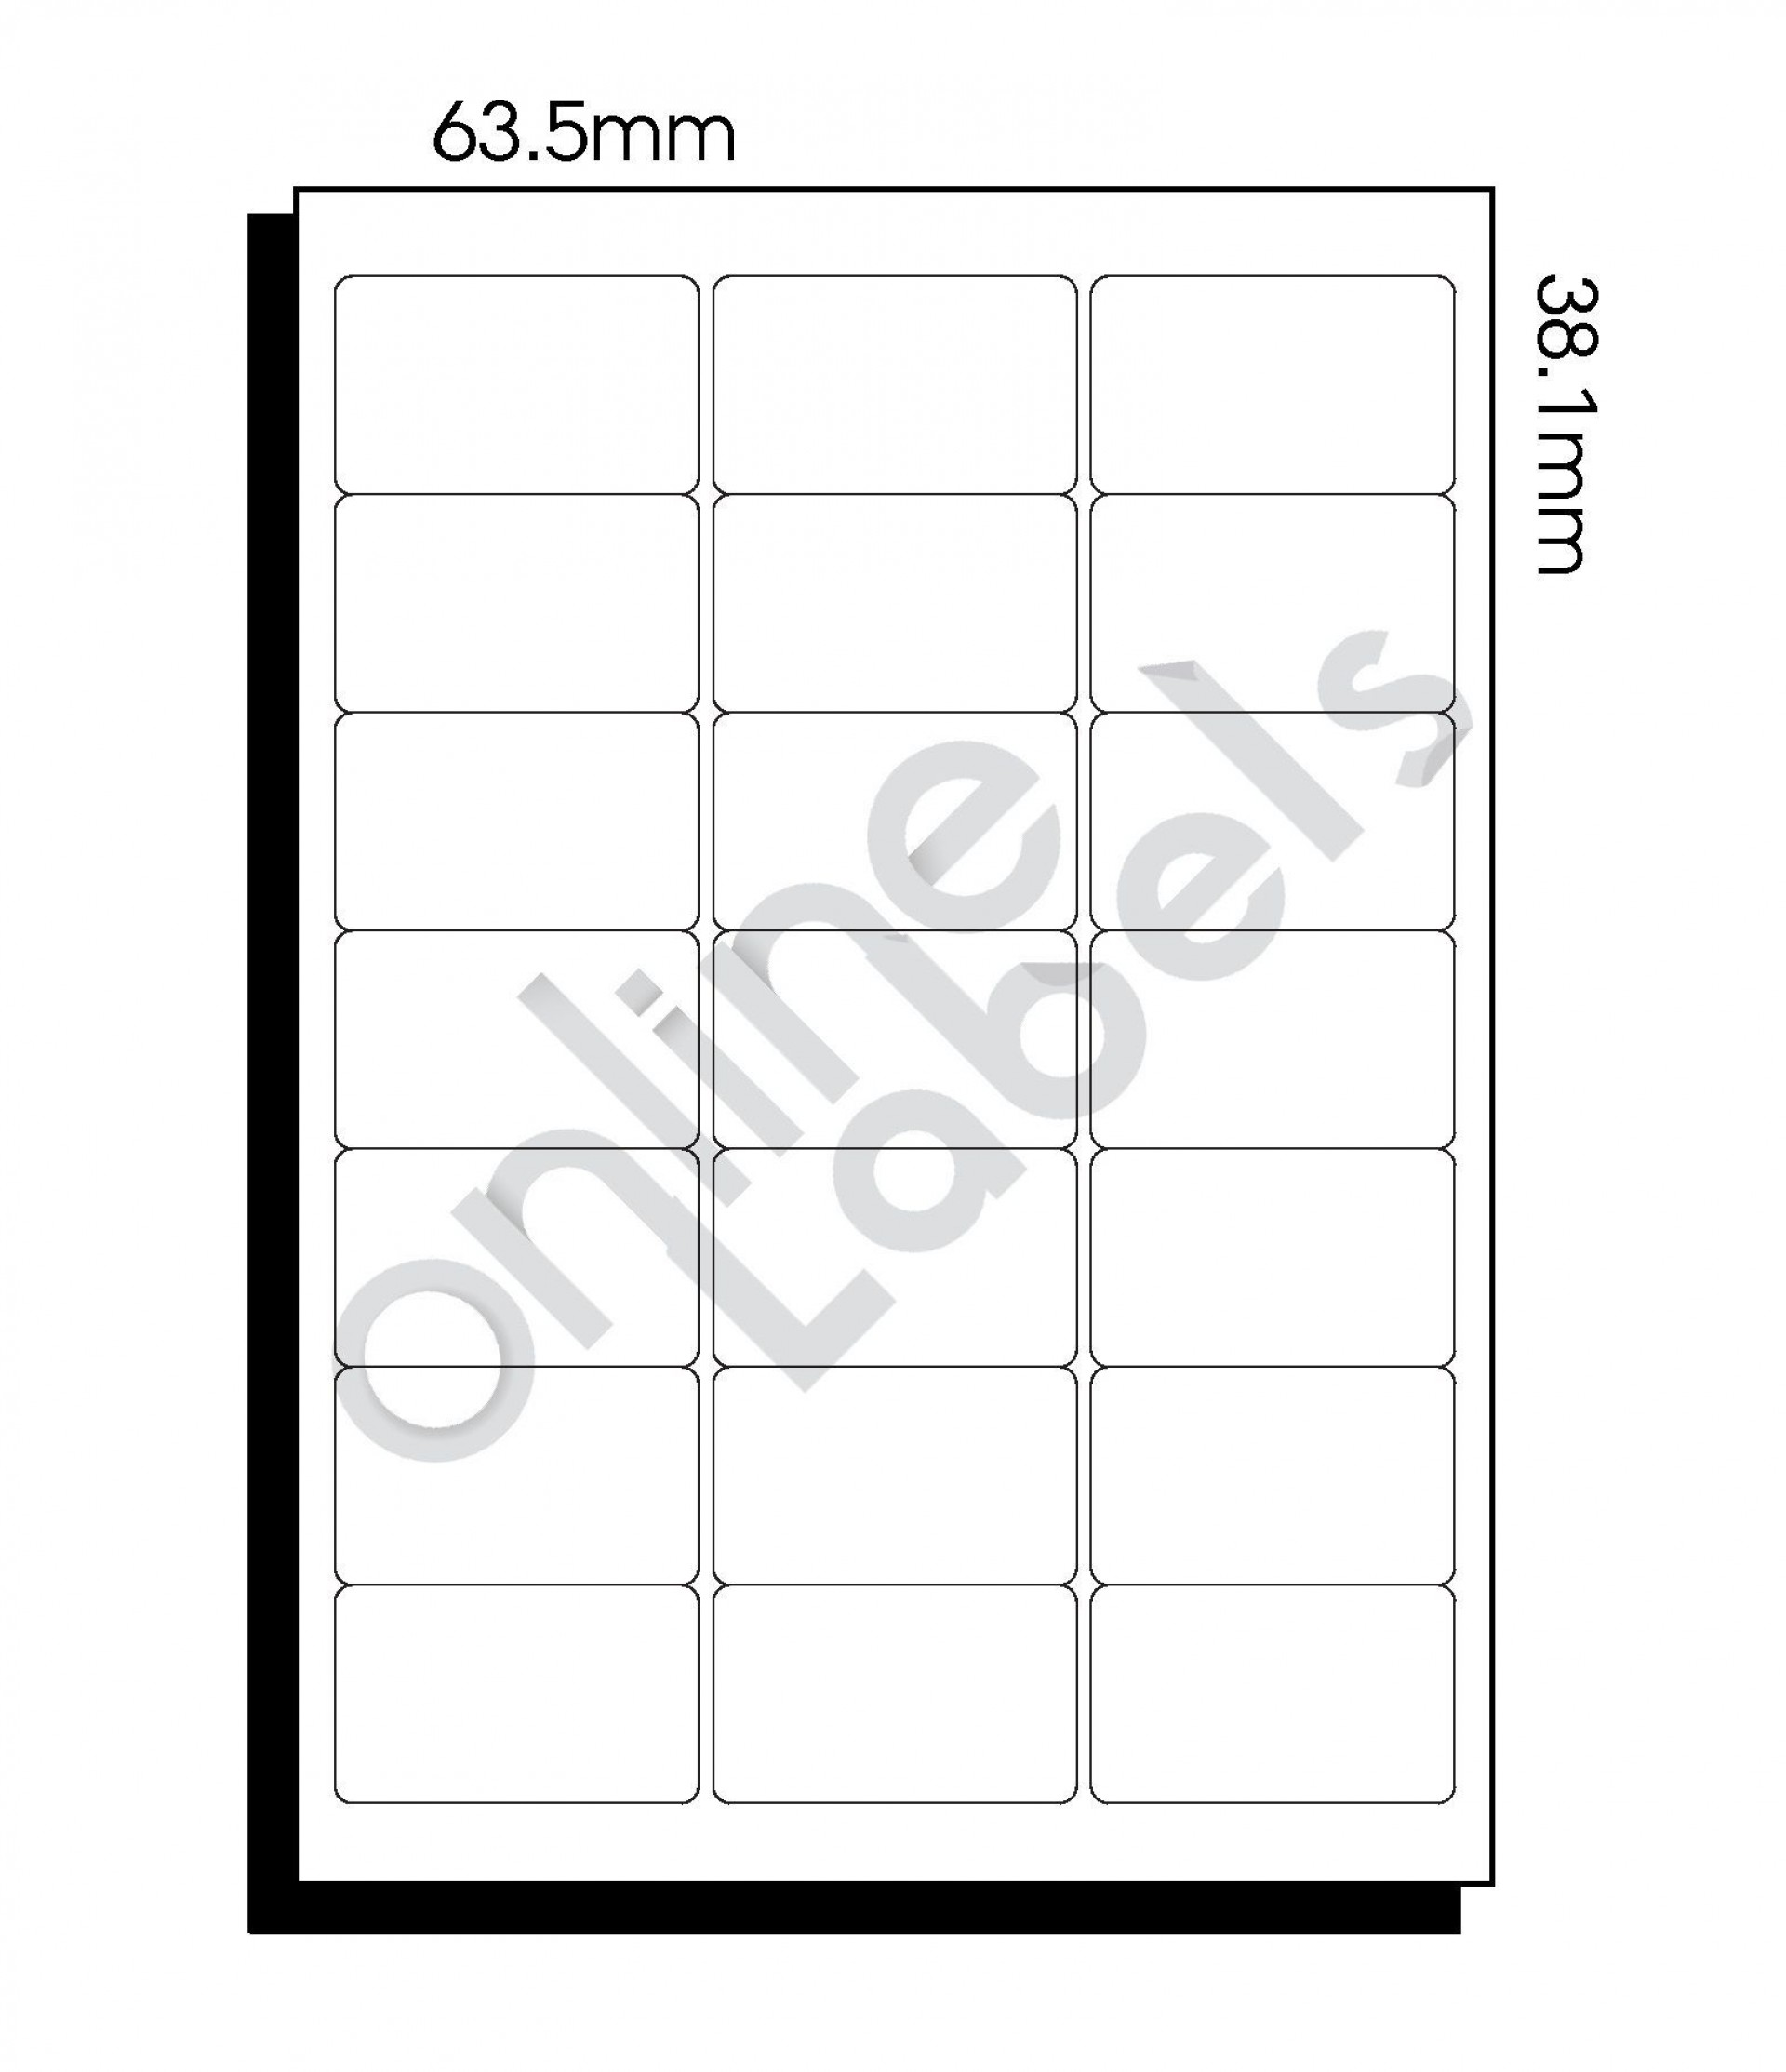 009 Beautiful Microsoft Word Addres Label Template 16 Per Sheet High Definition 1920